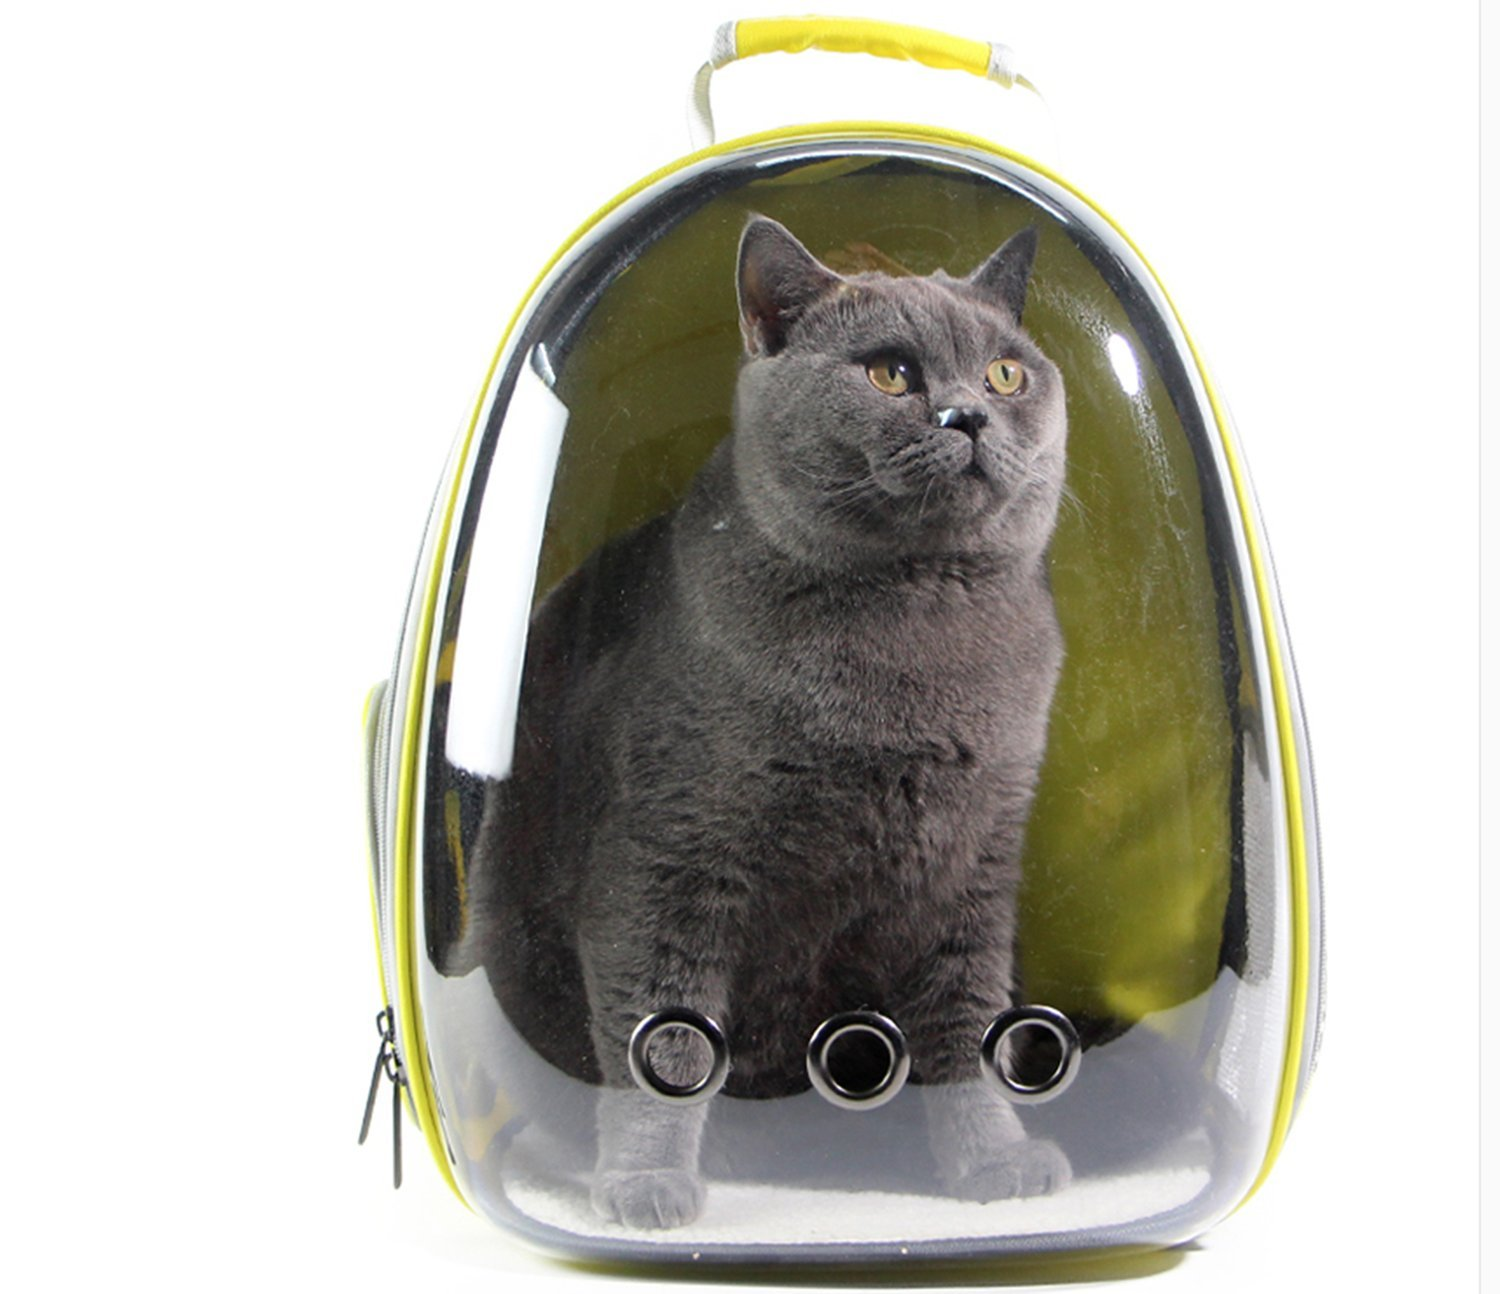 ZGUO Transparent Breathable Pet Travel Backpack Space Capsule Carrier Bag Hiking Bubble Backpack for Cat & Dog Puppy